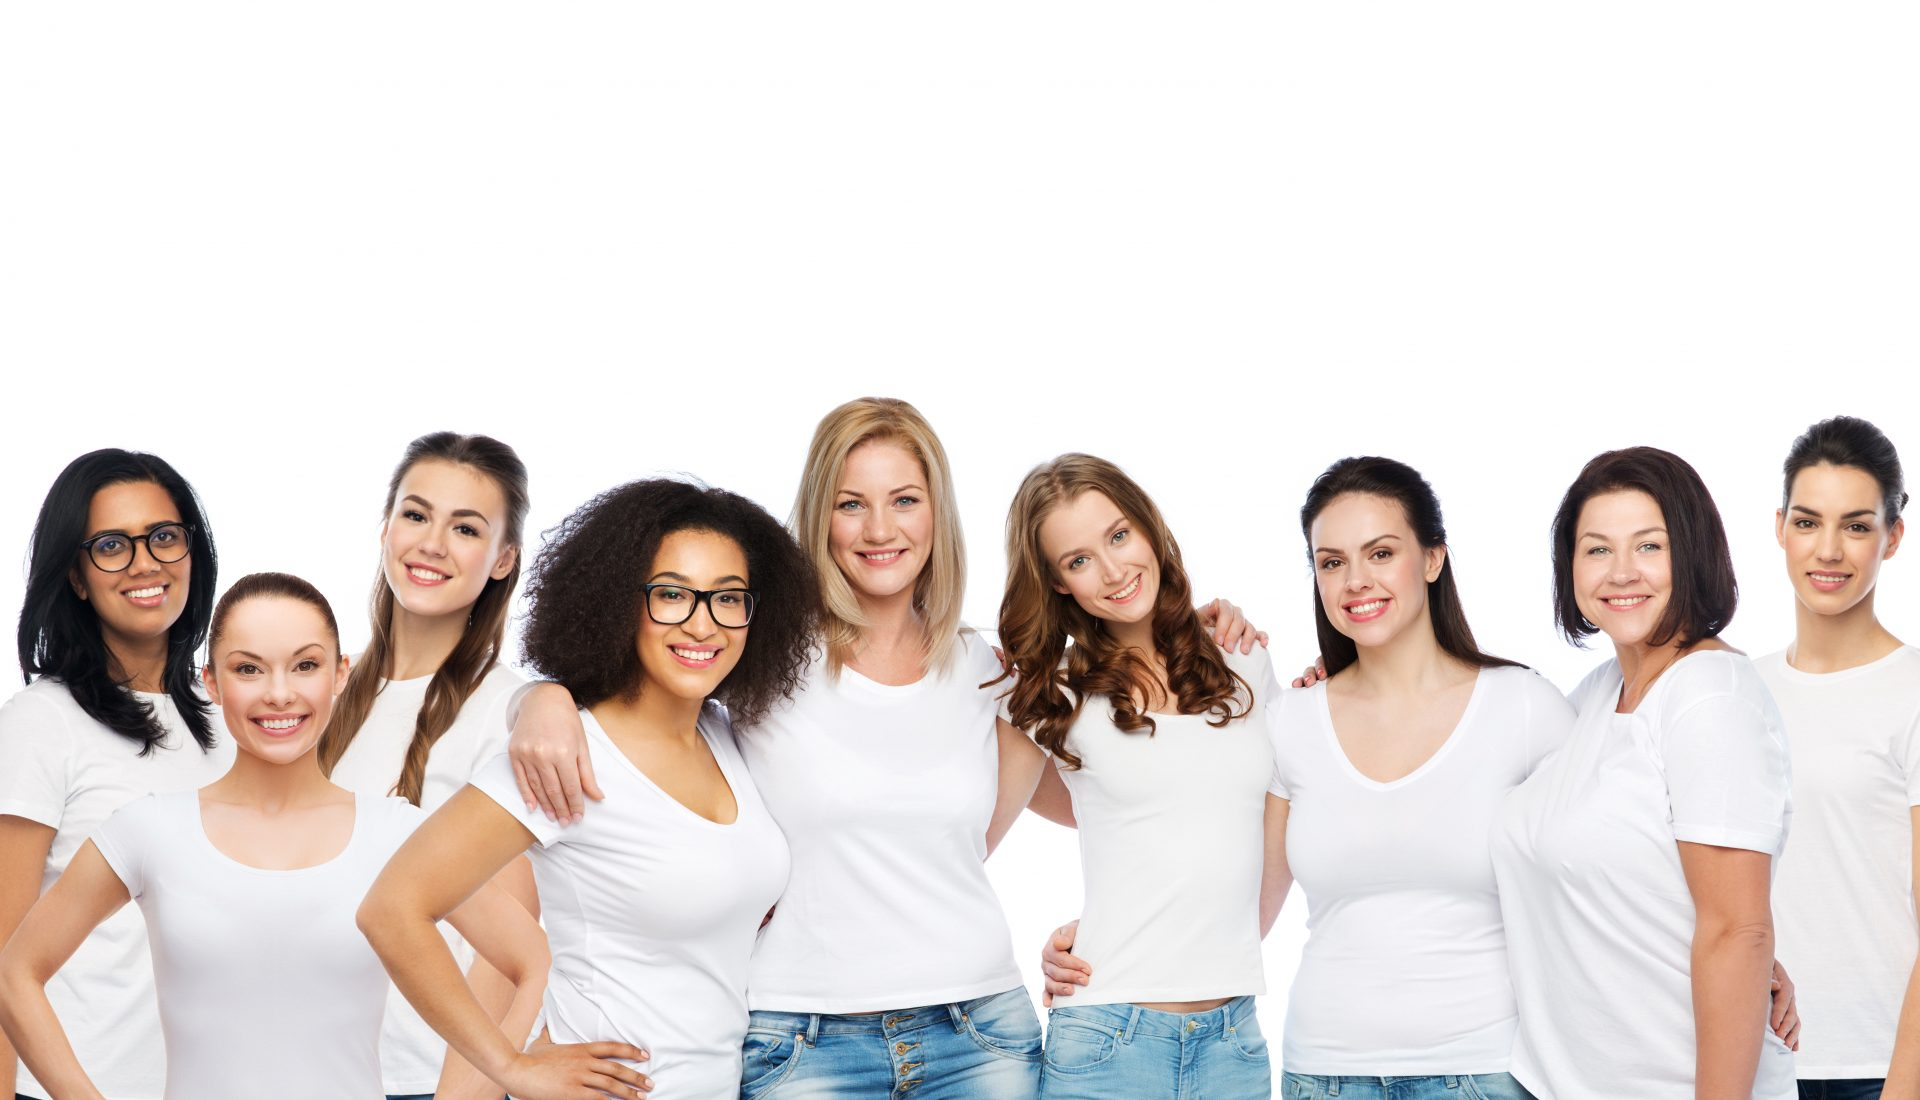 Diverse women in white shirts